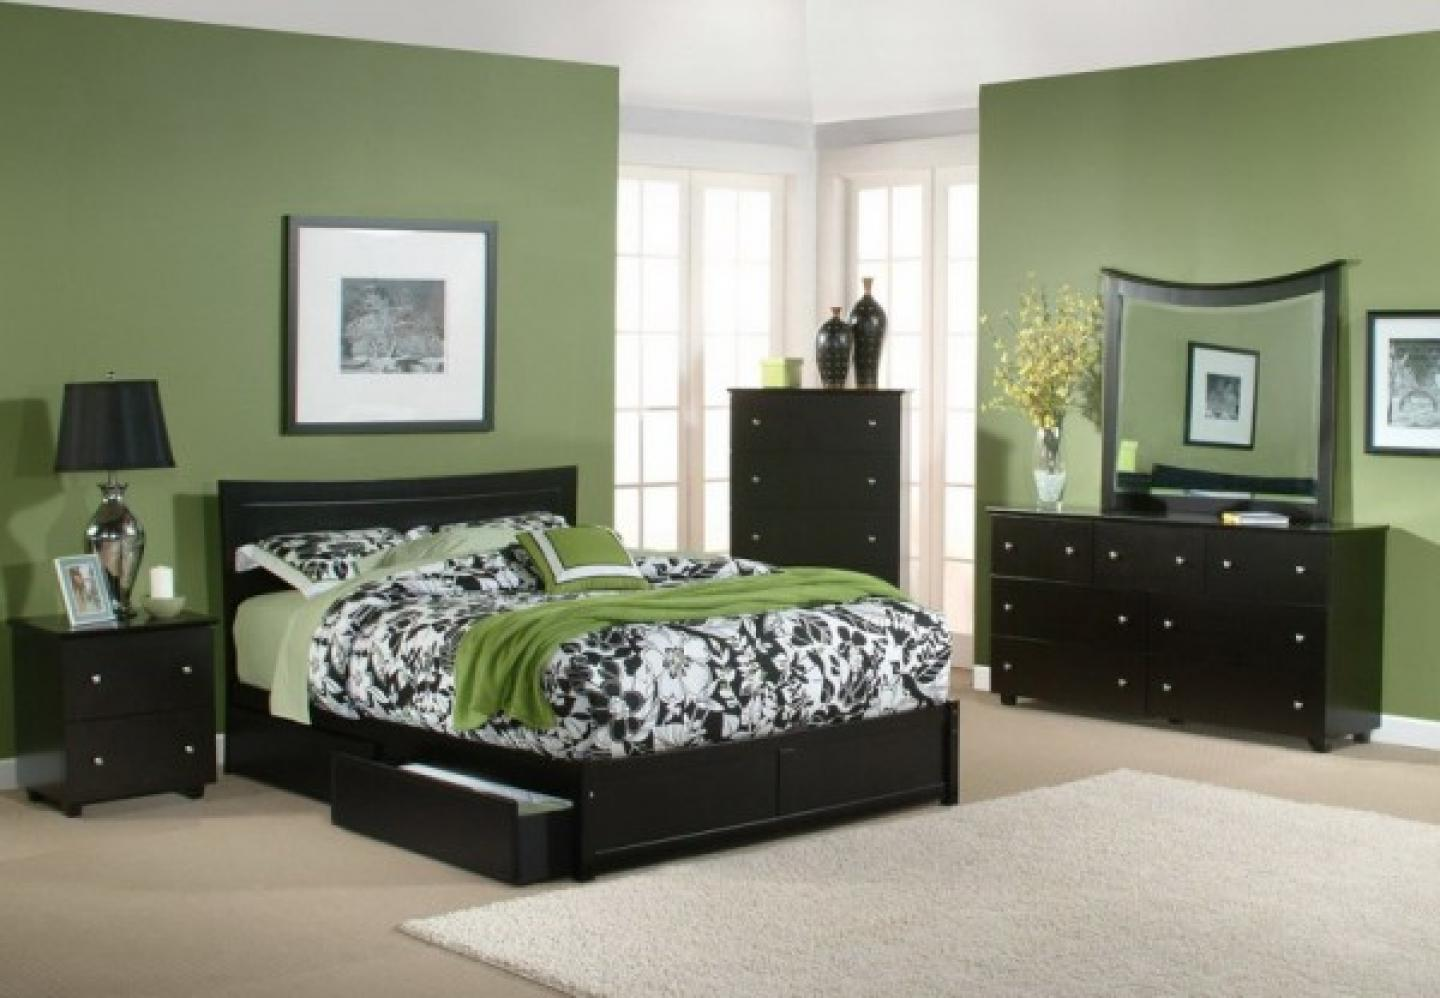 bedroom color dark furniture Cool And Simple Wall Colors For Bedrooms With Dark Furniture  998 X 1440